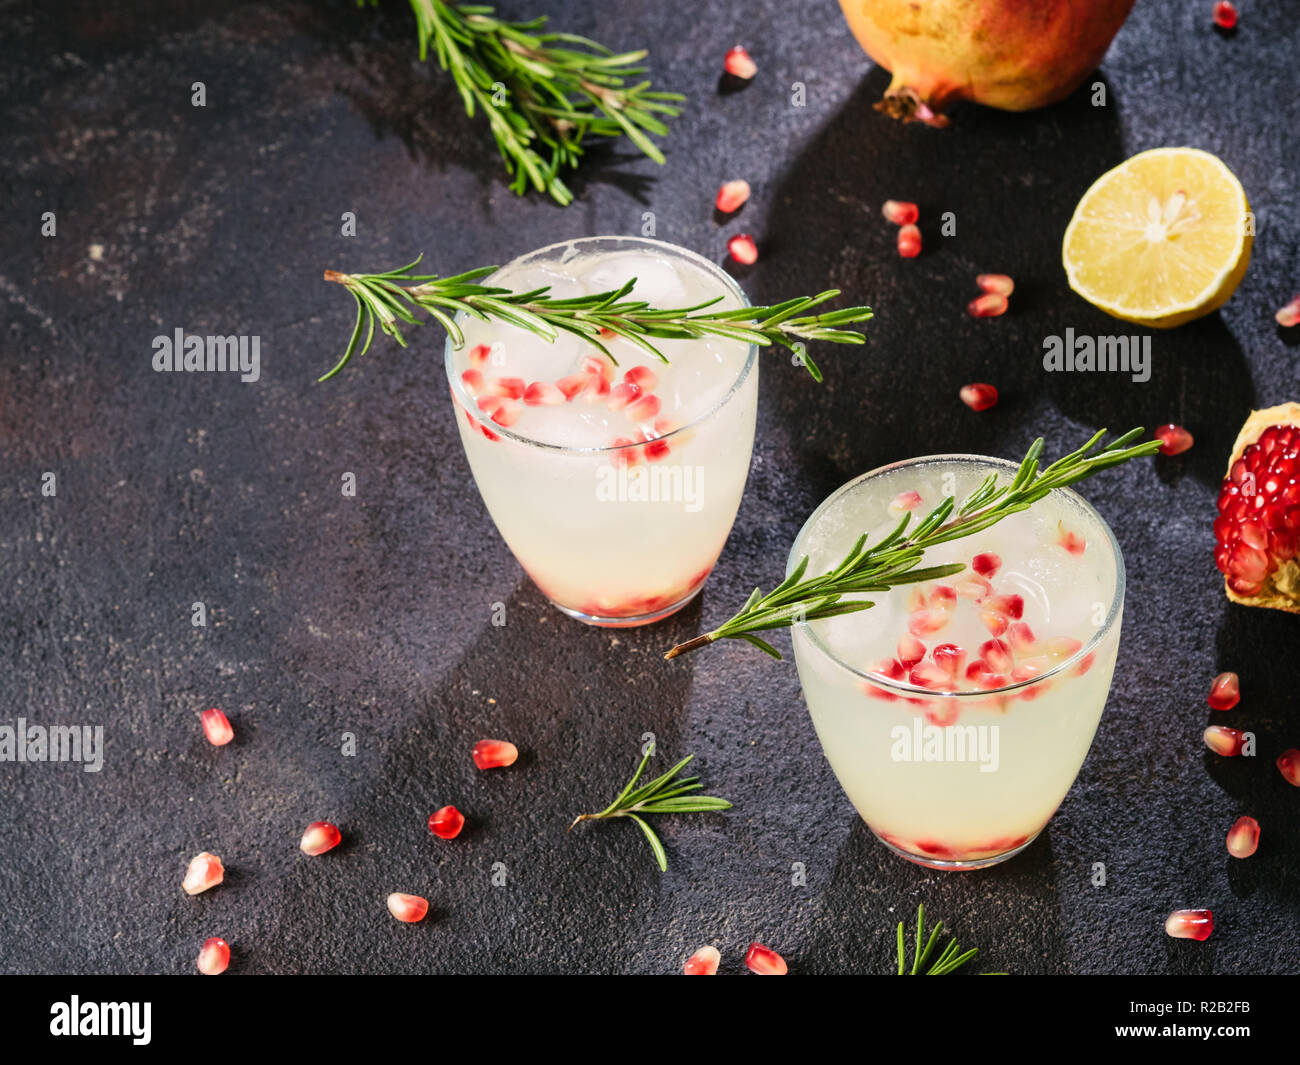 Autumn and winter cocktails idea - white sangria with rosemary, pomegrante and lemon juice and ingredients on black cement background. Copy space. - Stock Image